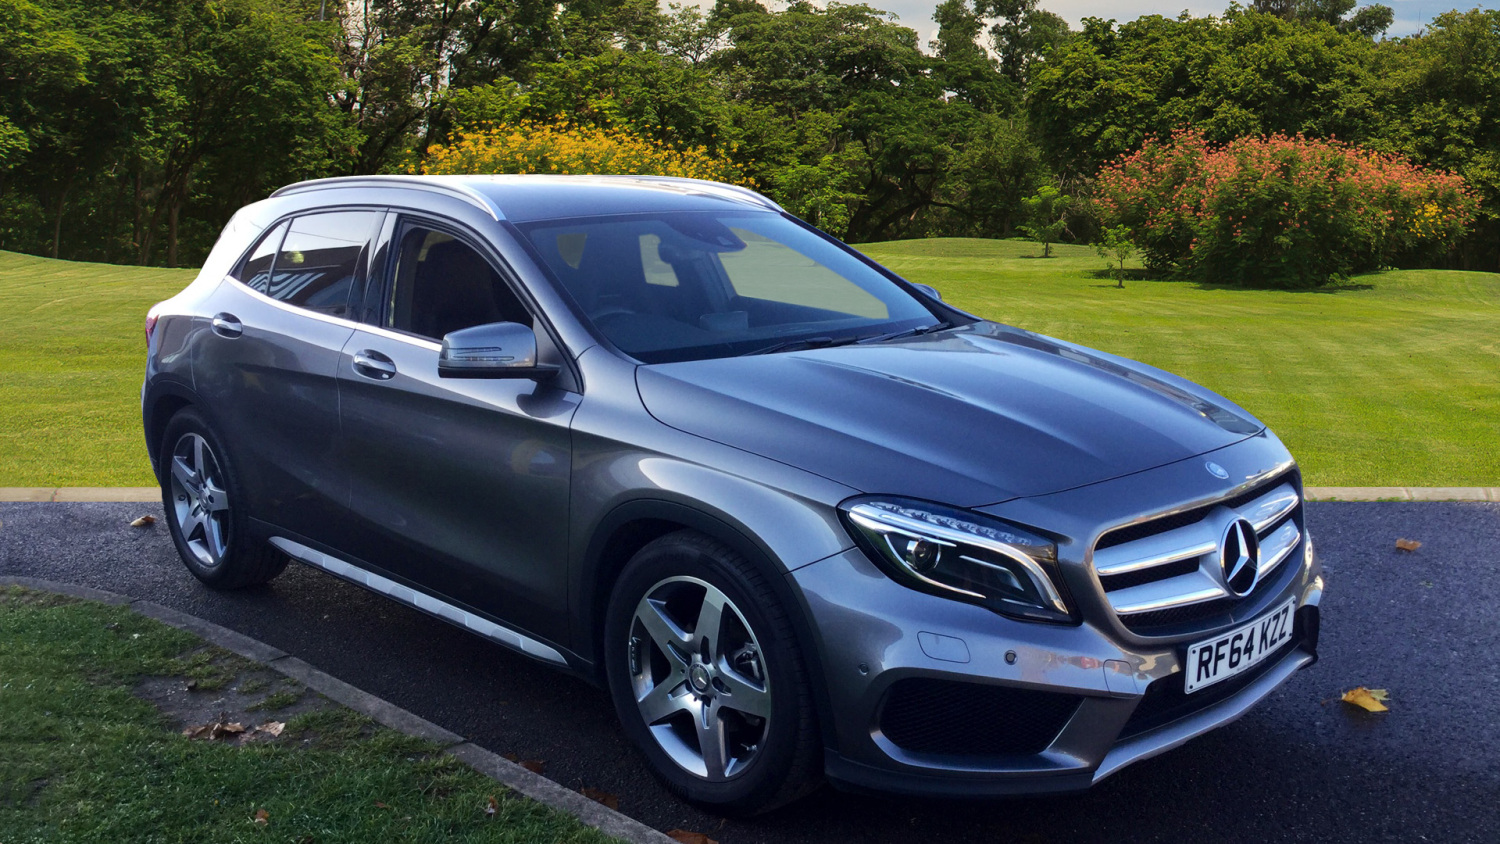 used mercedes benz gla gla 200 cdi amg line 5dr auto premium diesel hatchback for sale. Black Bedroom Furniture Sets. Home Design Ideas